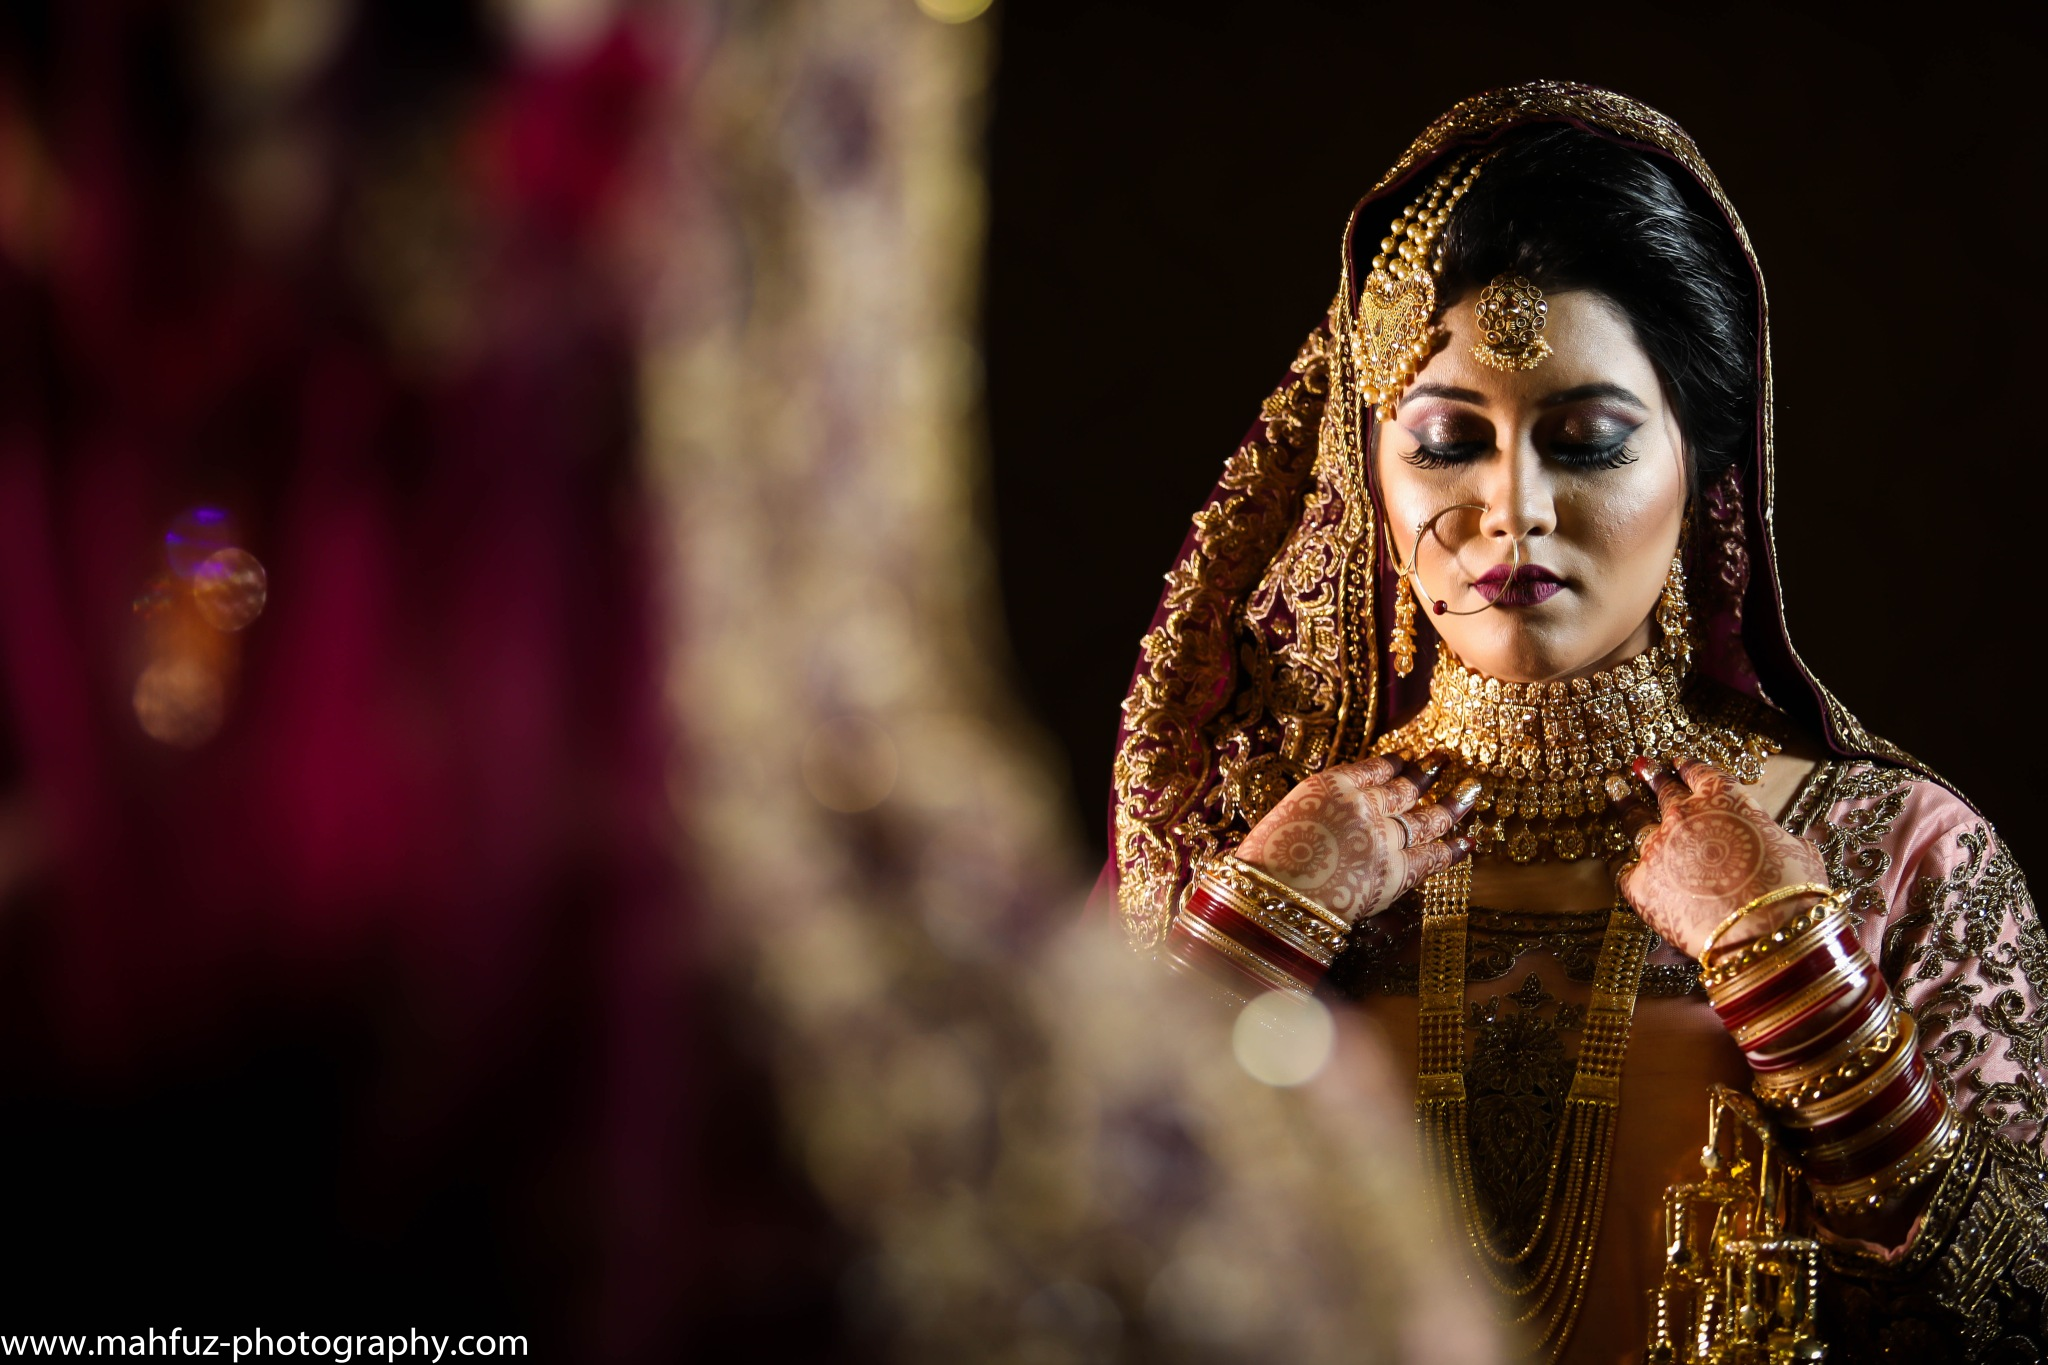 The Bride by Mahfuz_Photography